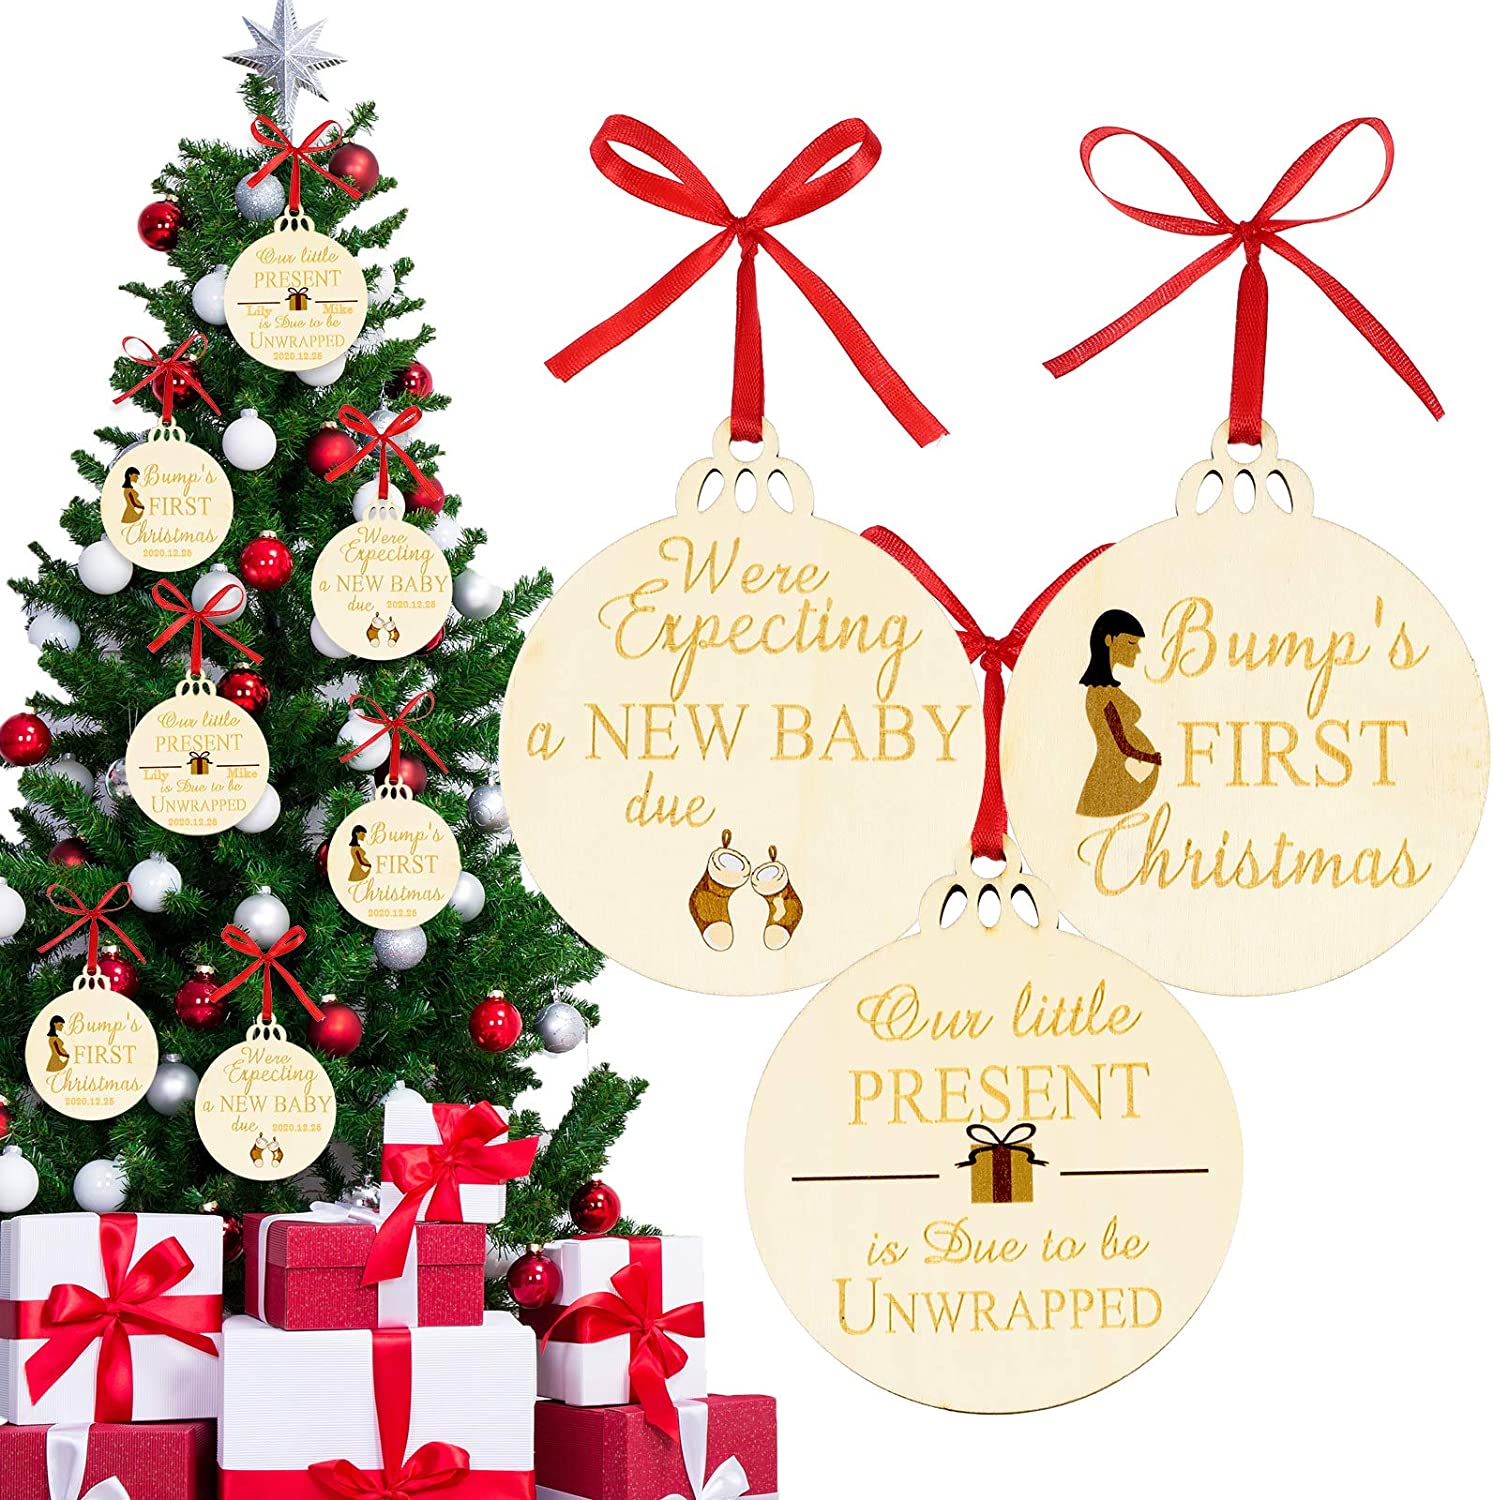 Pregnancy ornament 2020  expecting baby ornament ultrasound  expecting christmas ornament  Christmas pregnancy announcement ornament